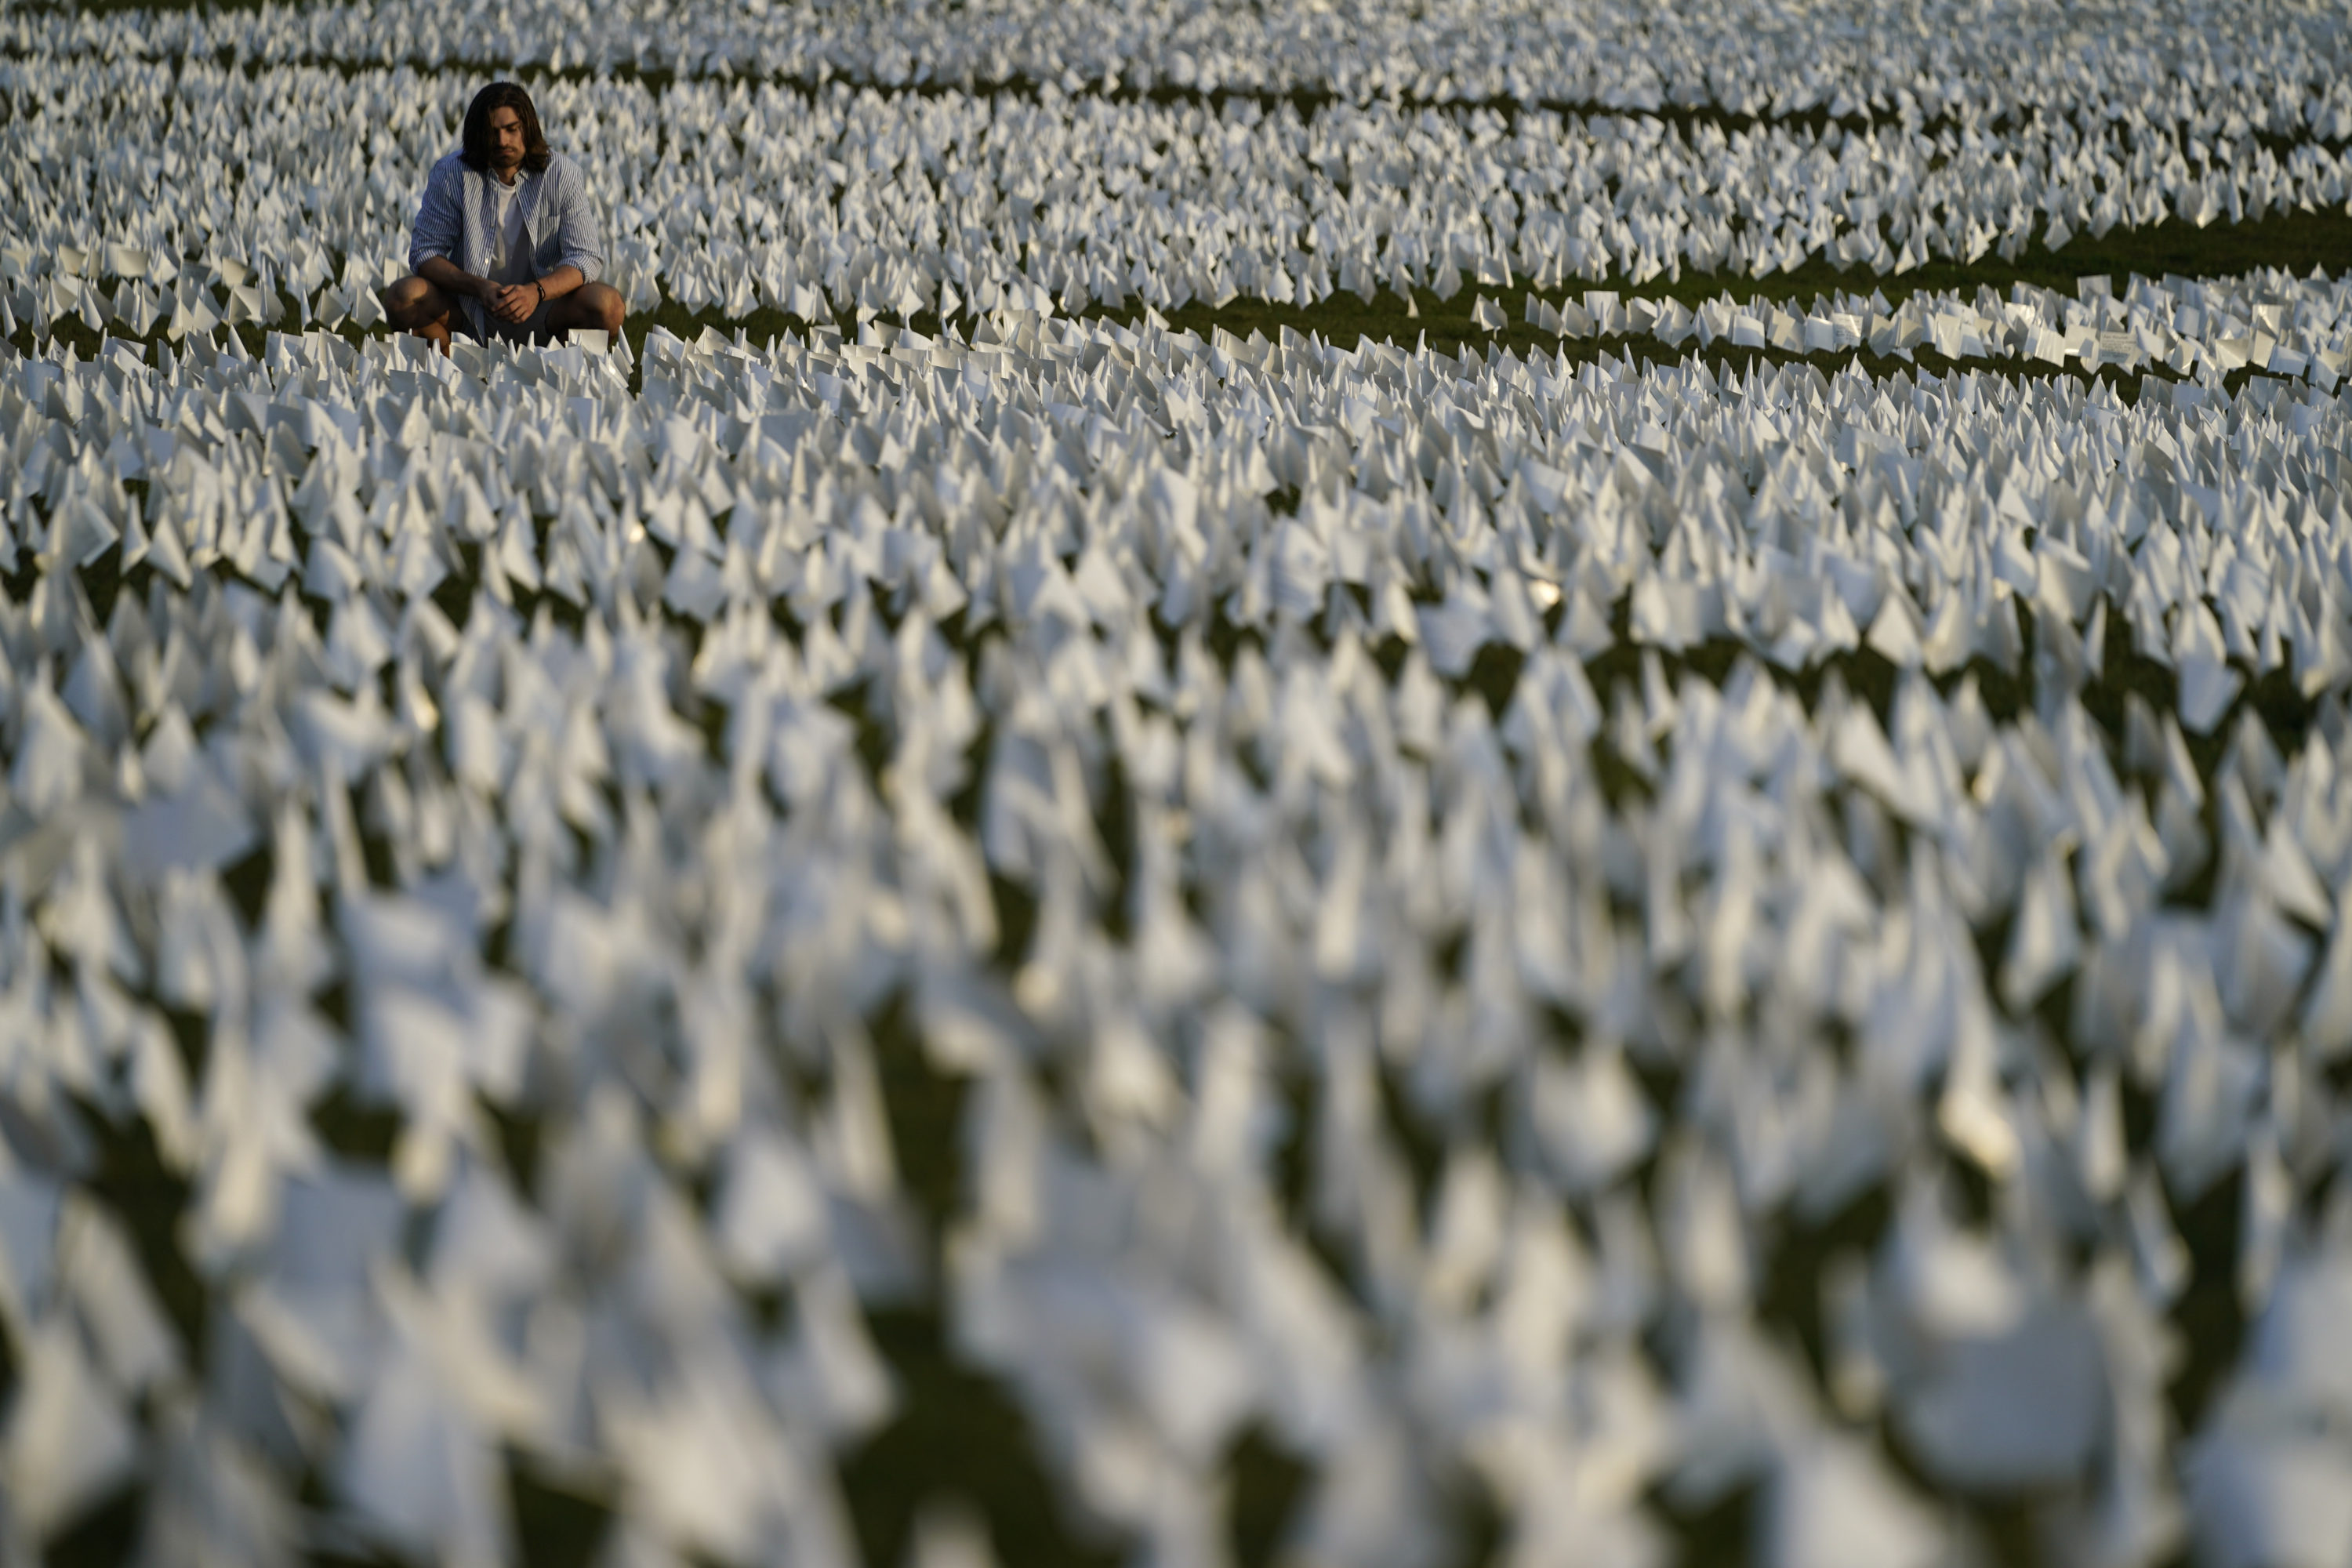 """A person looks at white flags that are part of artist Suzanne Brennan Firstenberg's temporary art installation, """"In America: Remember,"""" in remembrance of Americans who have died of COVID-19, on the National Mall in Washington on Sept. 17, 2021. (Brynn Anderson/AP)"""